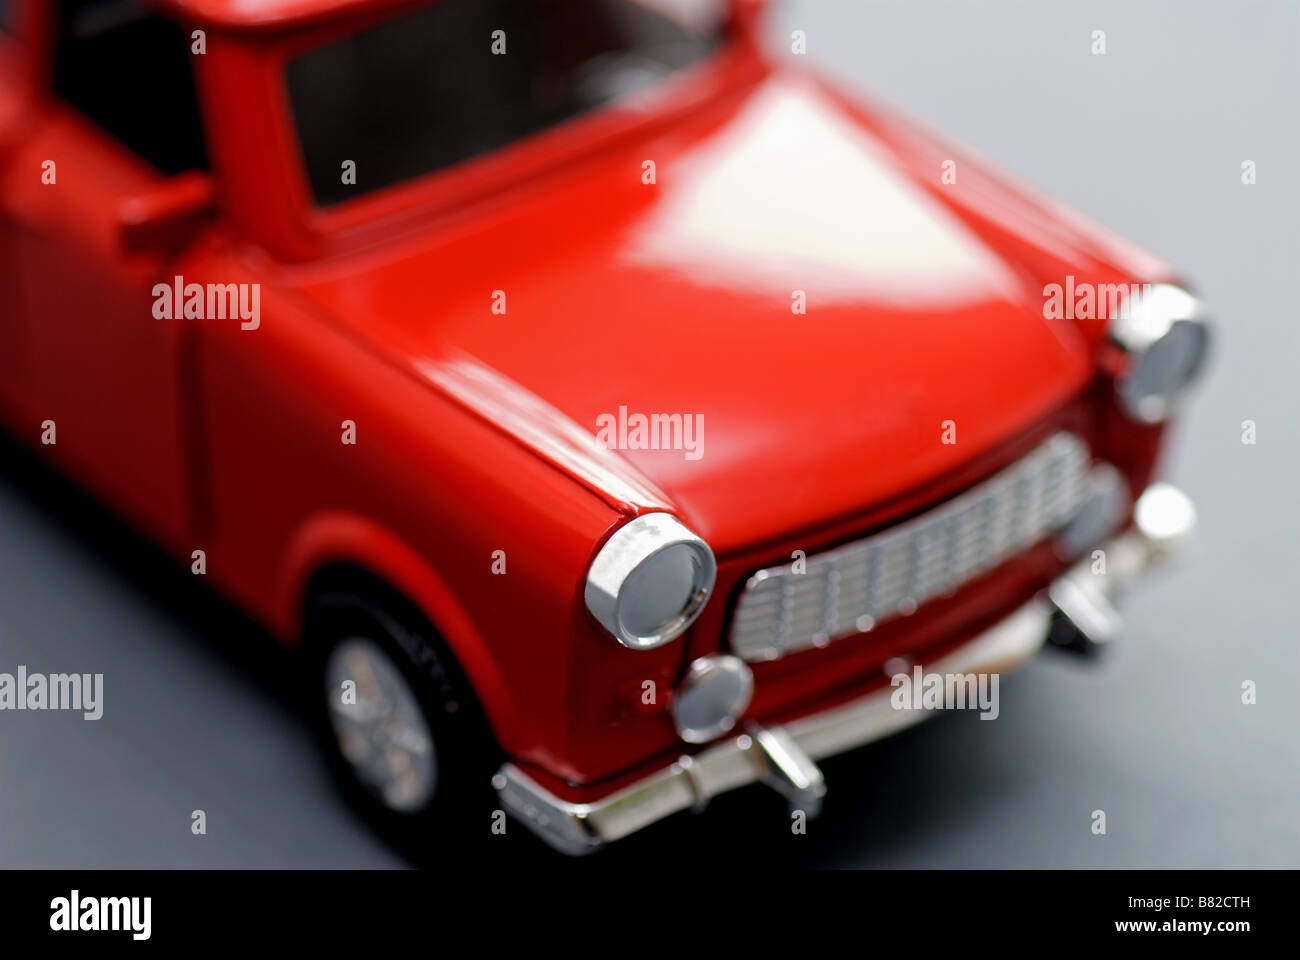 Car Made In Aluminum : Diecast metal trabant toy car made in china stock photo